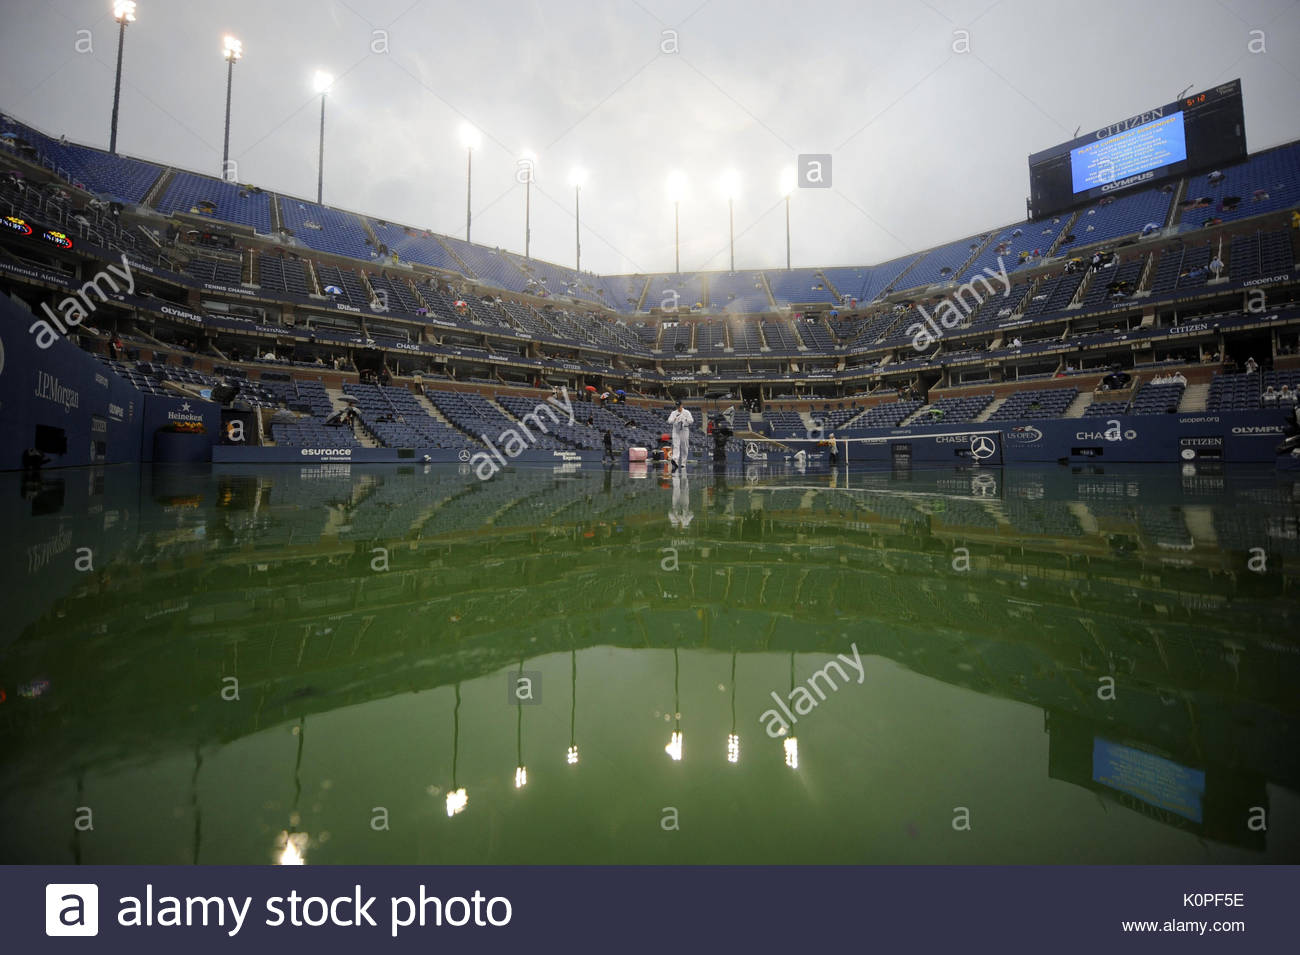 File photo dated 12-09-2010 of Rain delays the Men's Final between Serbia's Novak Djokovic and Spain's Rafael Nadal during day fourteen of the US Open - Stock Image